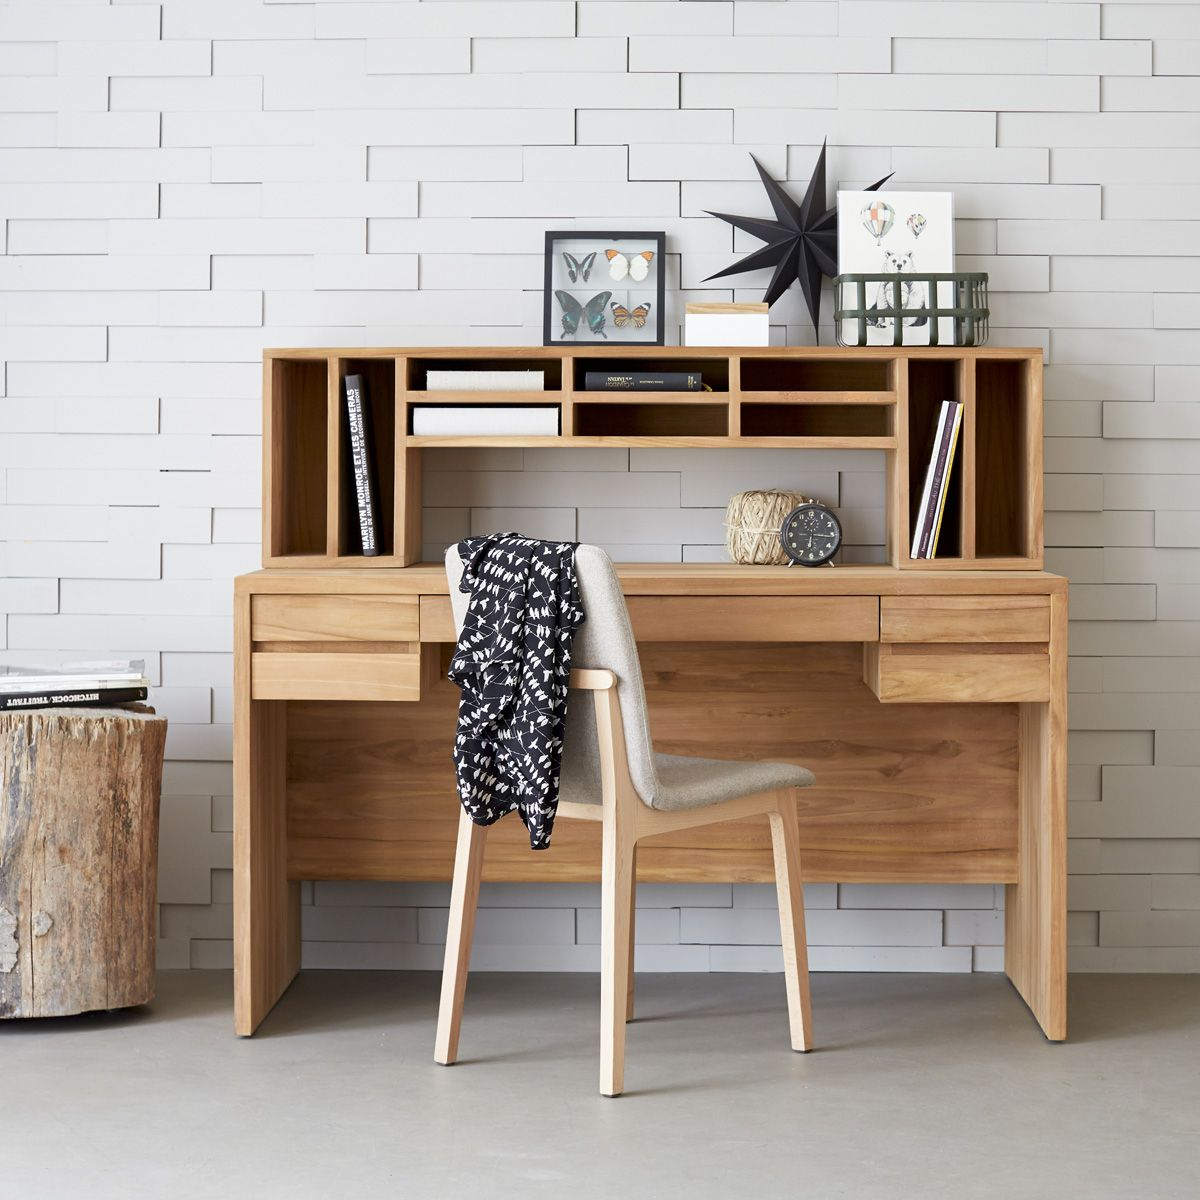 bureau en teck 140 milano pinterest le souci deco bureau et teck. Black Bedroom Furniture Sets. Home Design Ideas